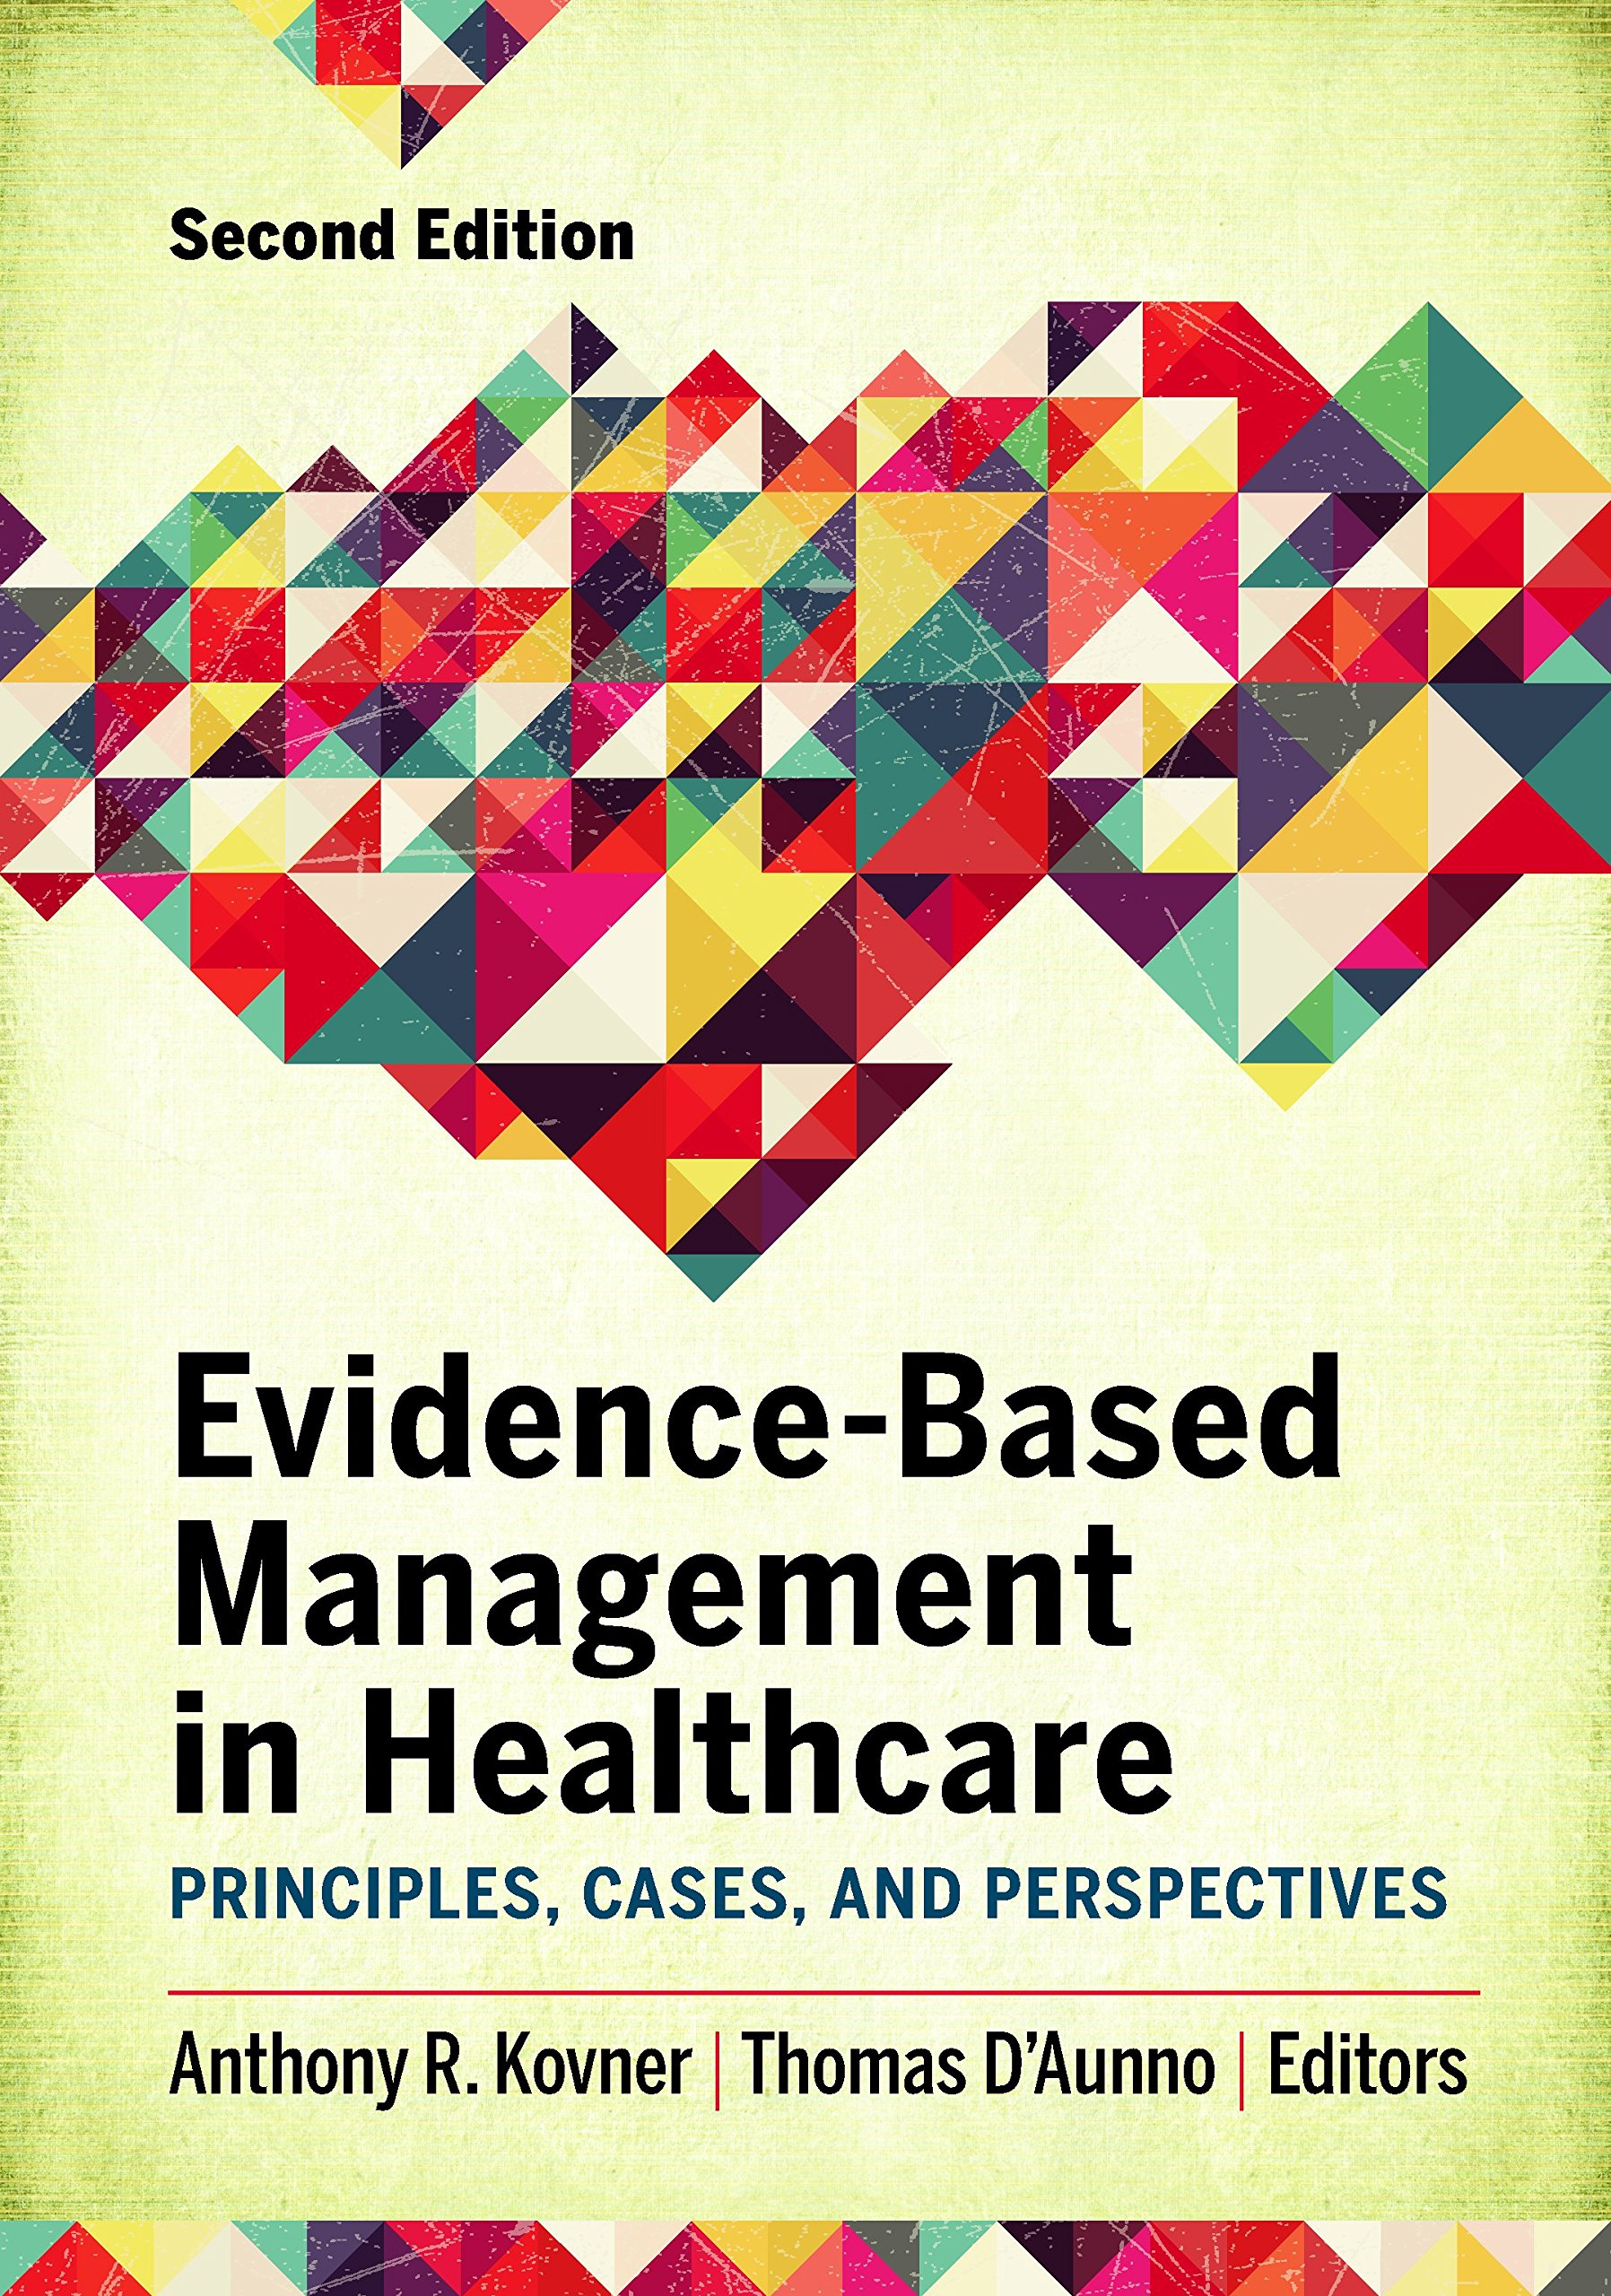 Evidence-based Management in Healthcare: Principles, Cases, and Perspectives, Second Edition